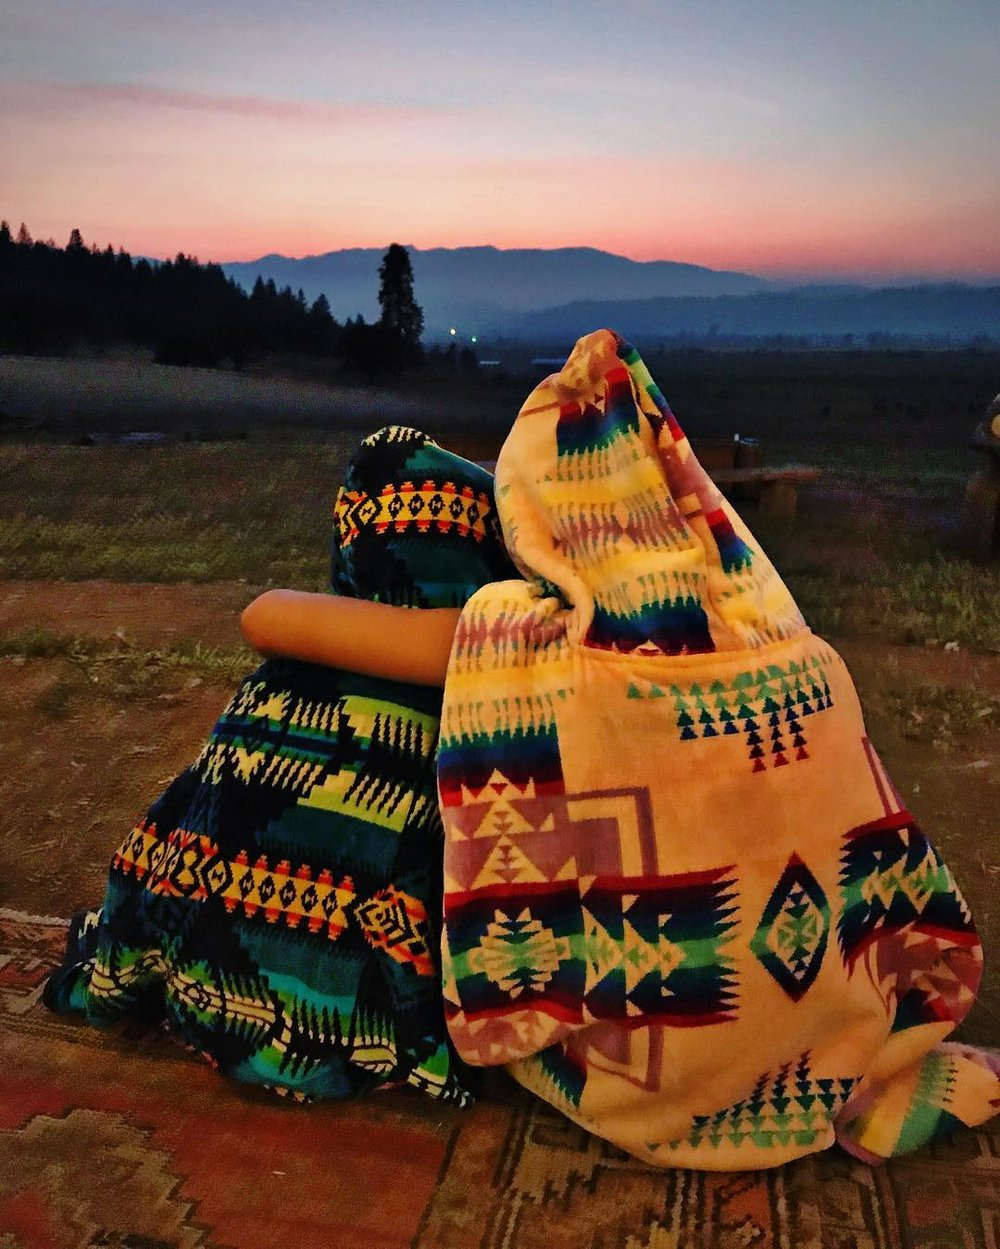 Sunday night twilight showers at camp for these sisters with their favorite hoodie towels and the last few minutes of pink sky sunset. ✨%0A#campfivemarys #sisterhood #tinyandJJ #pendleton #pendletontowels #m5favorites #tinytess #ohjjs (1).jpg